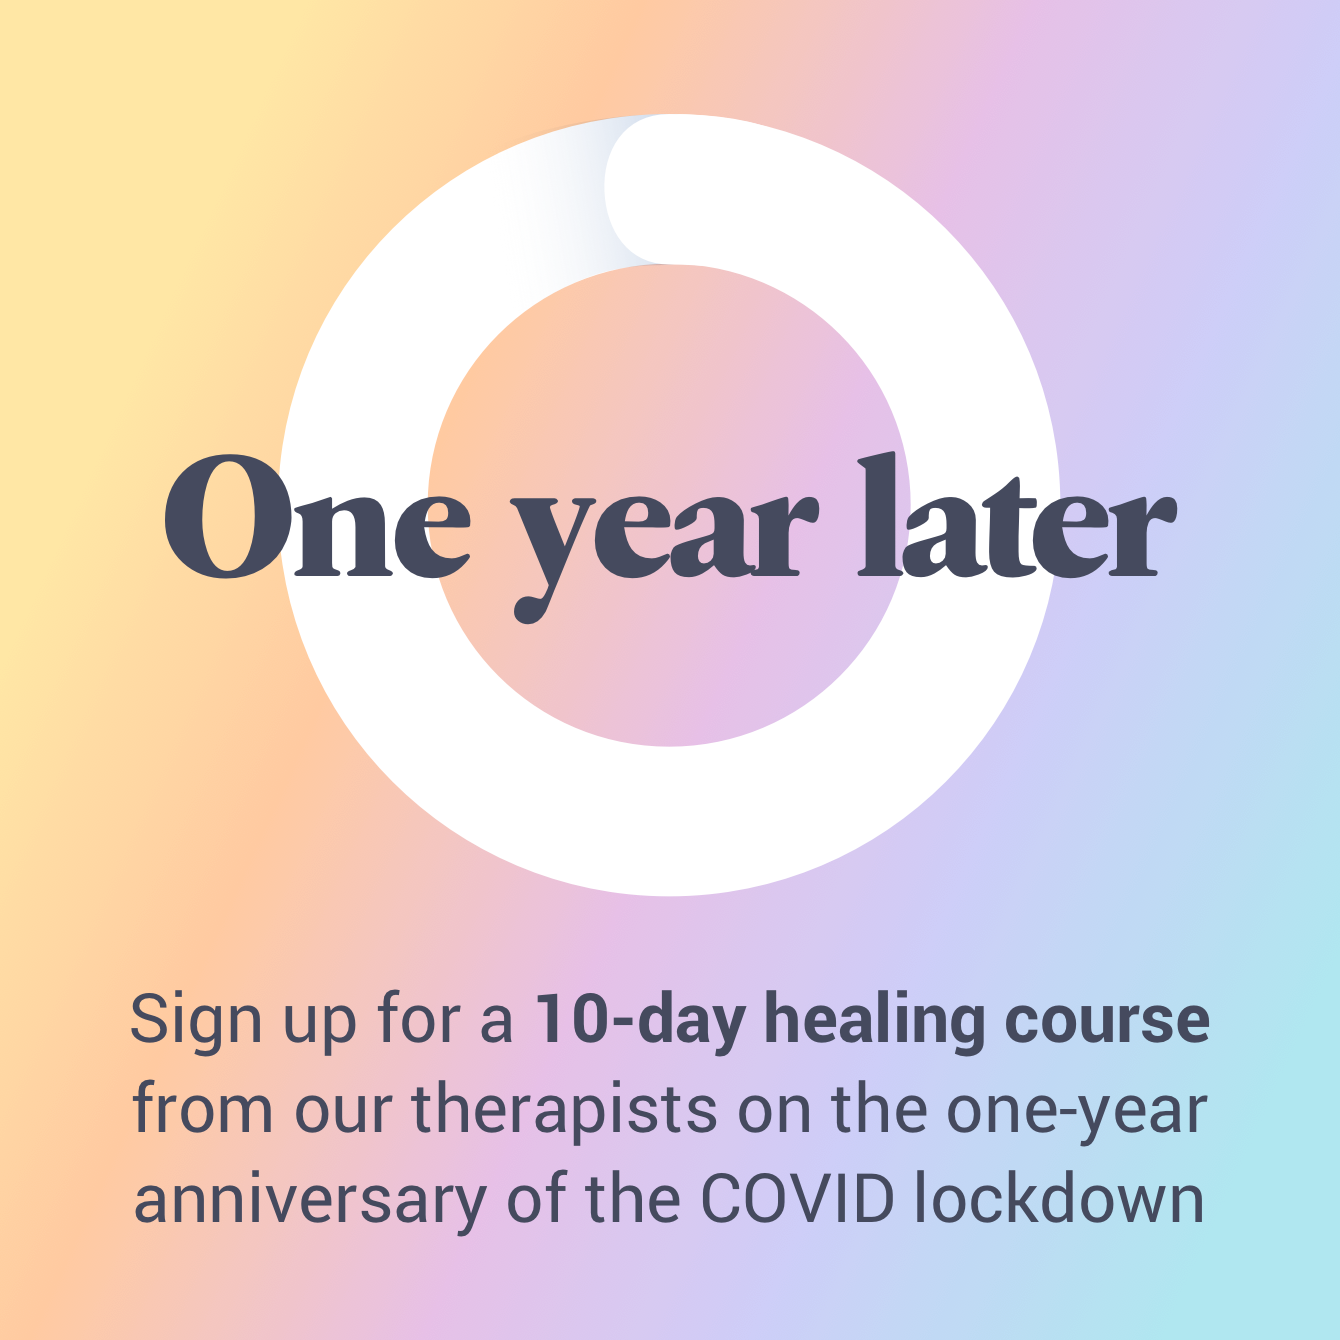 Sign Up for a 10-day healing course from our therapists